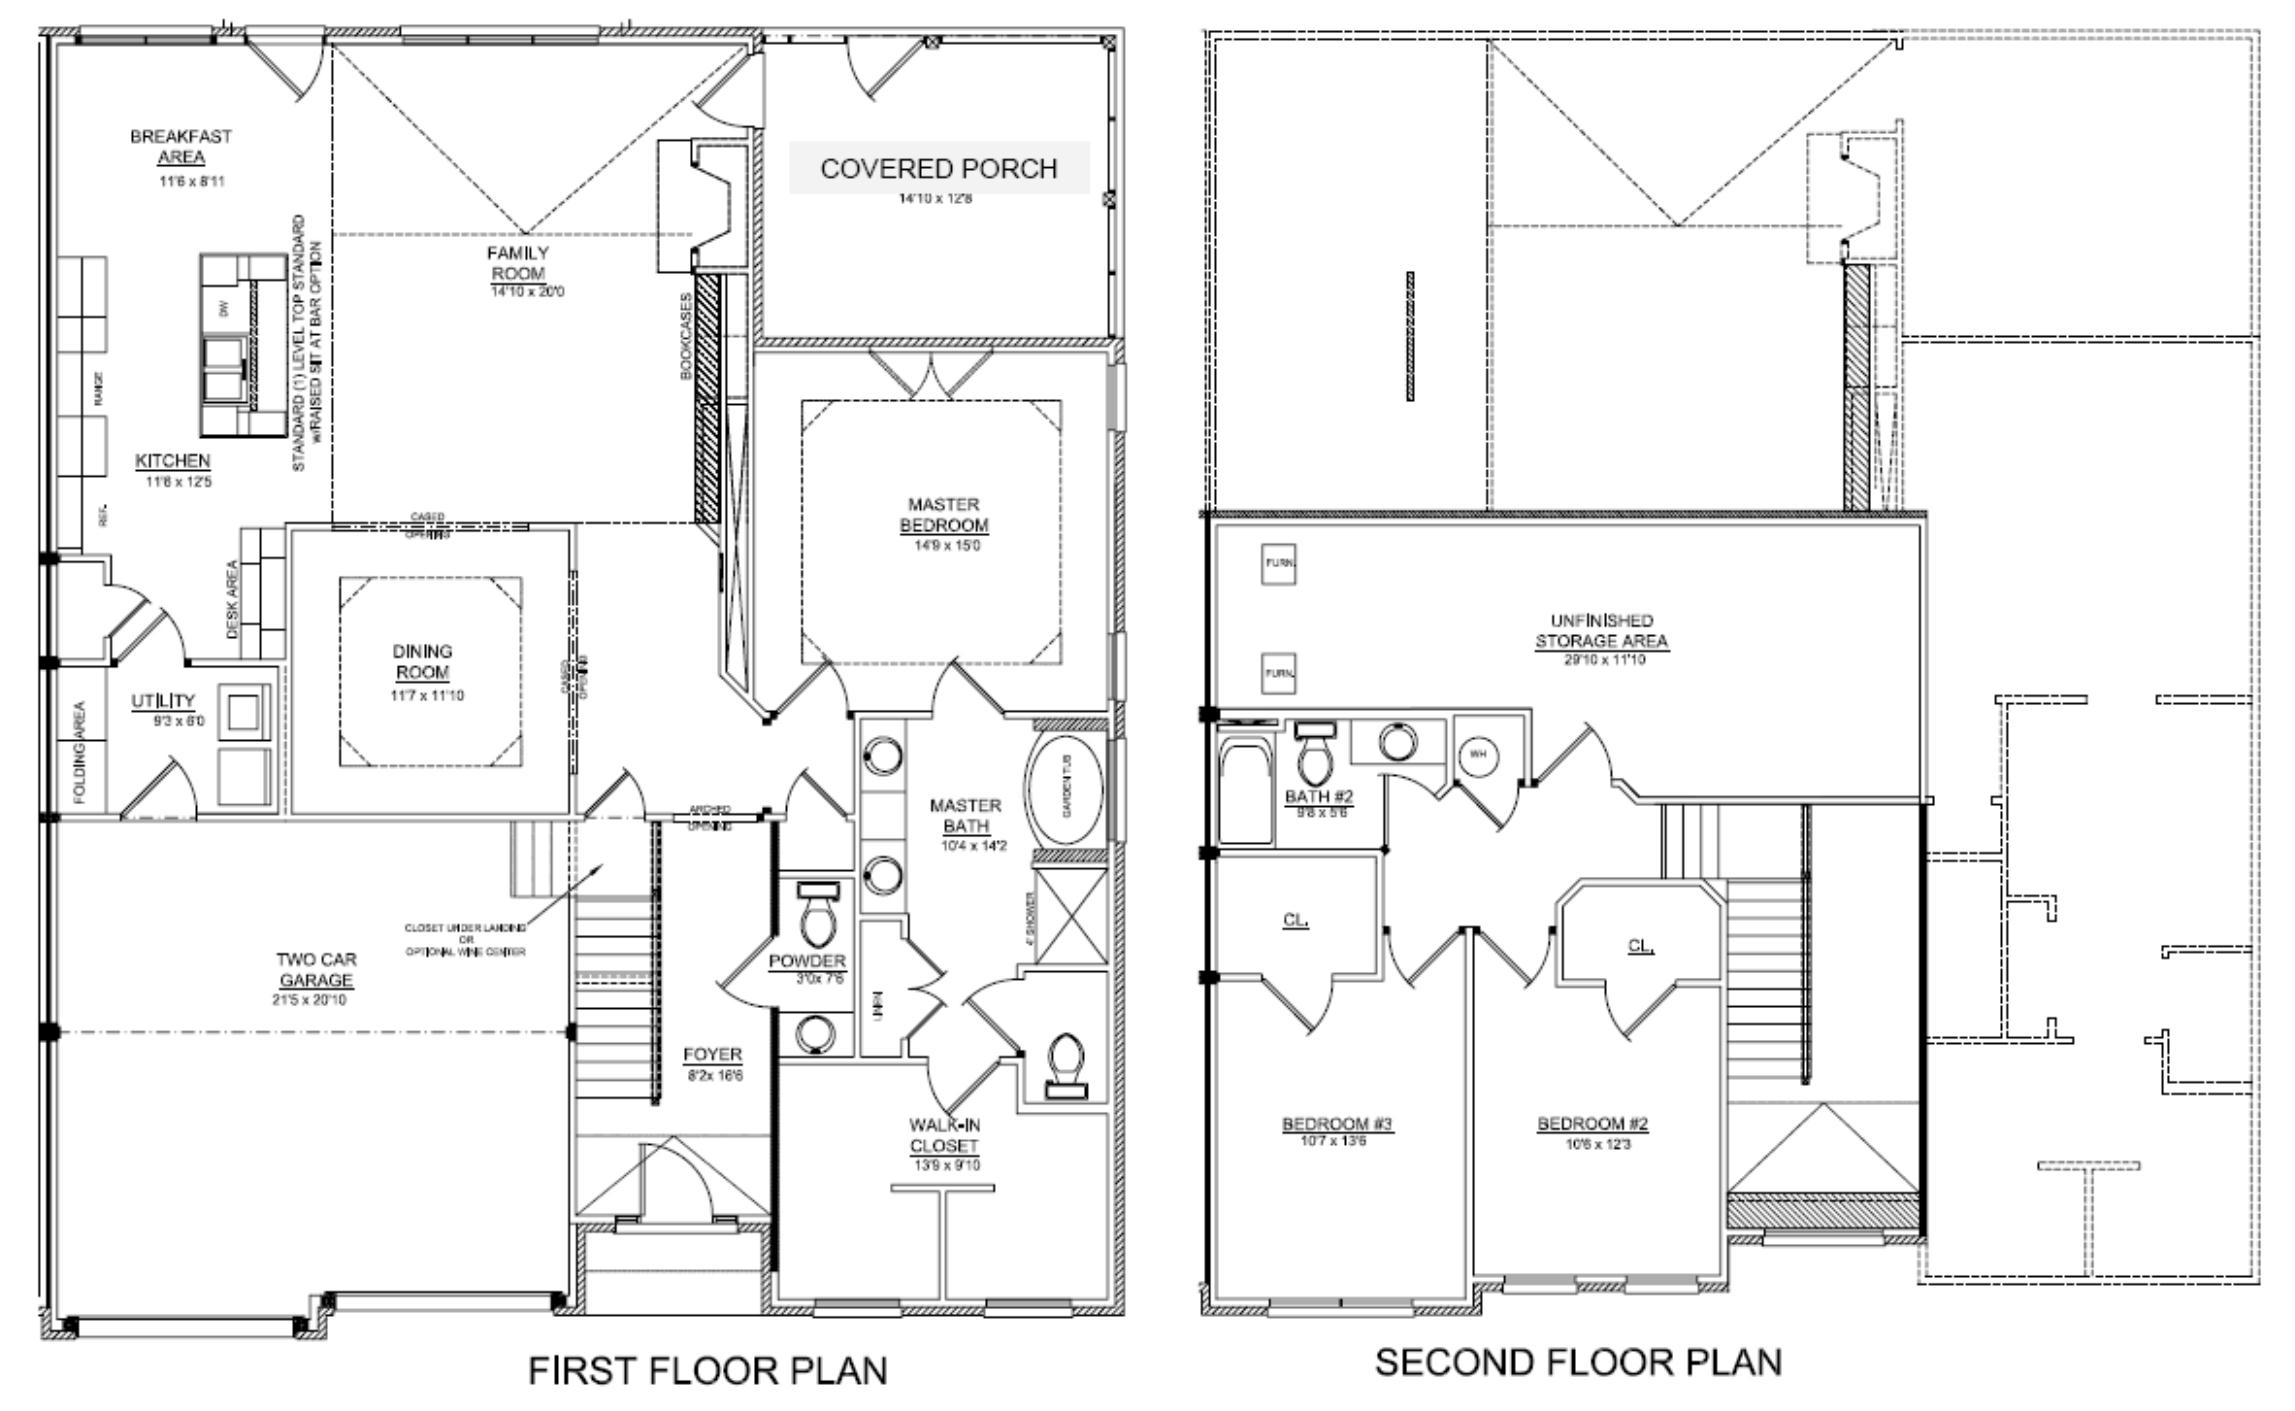 25 Delightful Luxury Townhome Floor Plans Building Plans